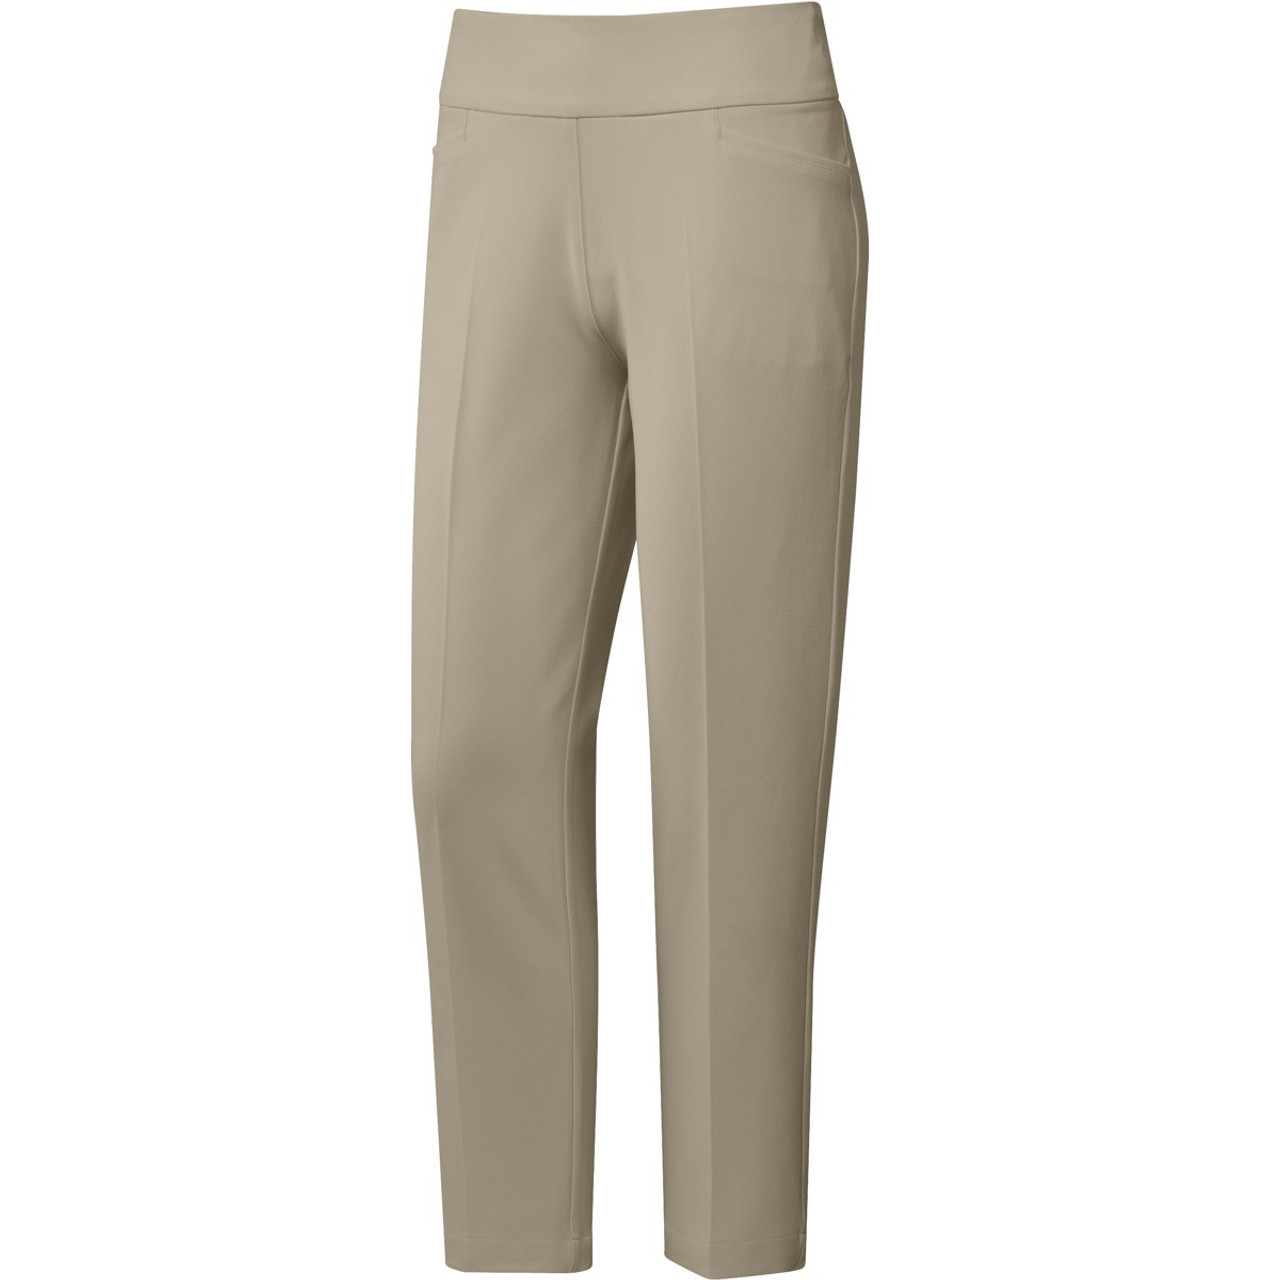 Adidas Womens Ultimate 365 Adistar Cropped Pants - Trace Khaki